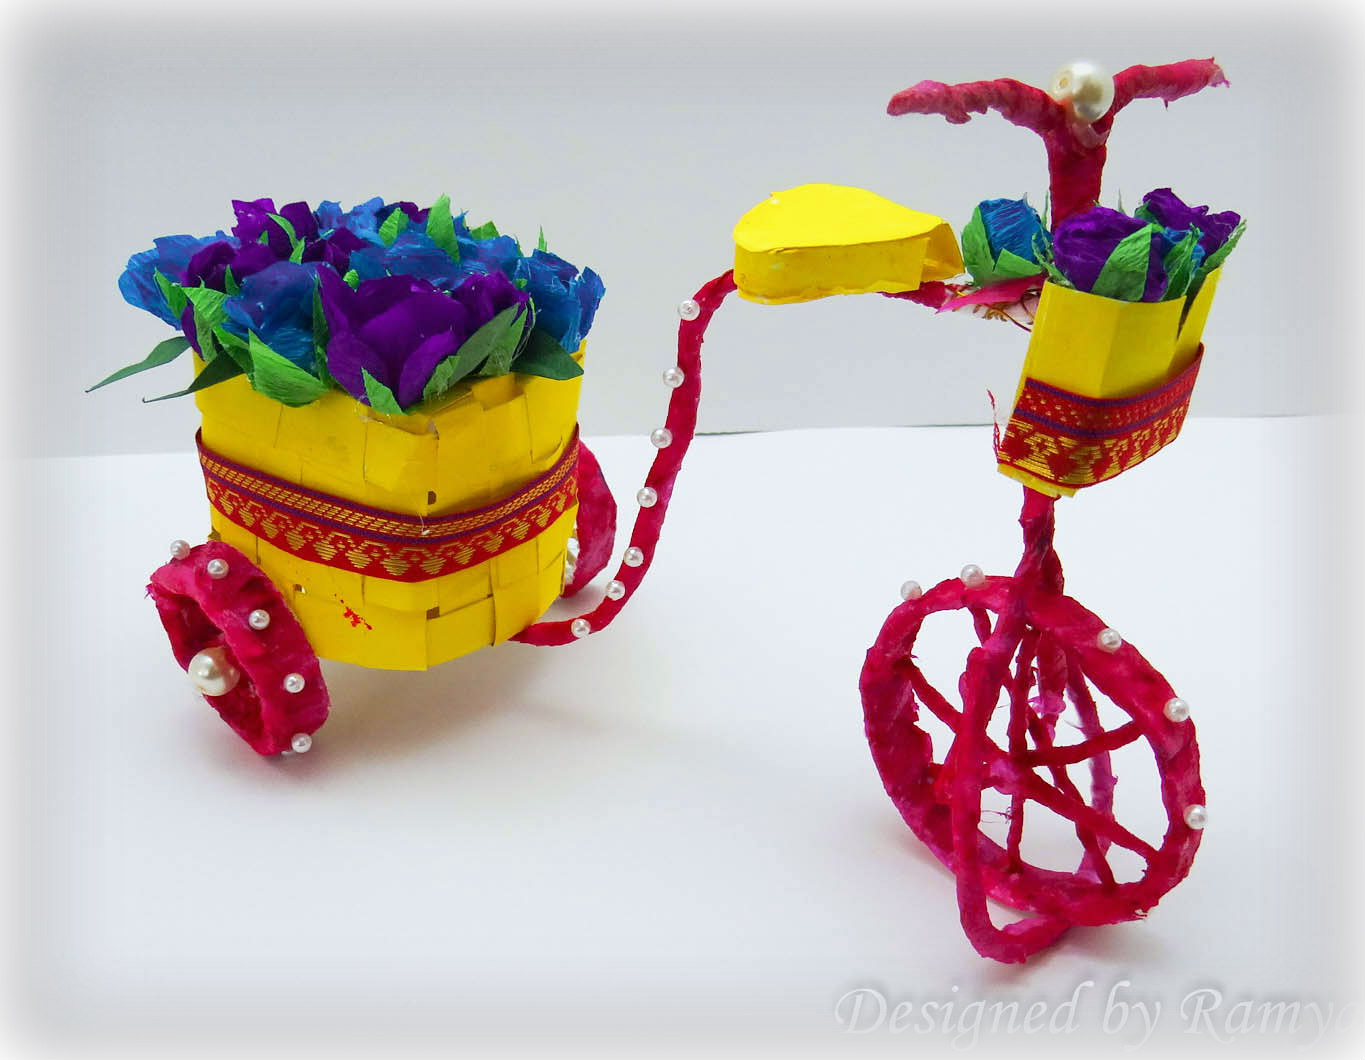 Kriya tive kaleidoscope diy bicycle using recycled materials for Things to make with recycled materials